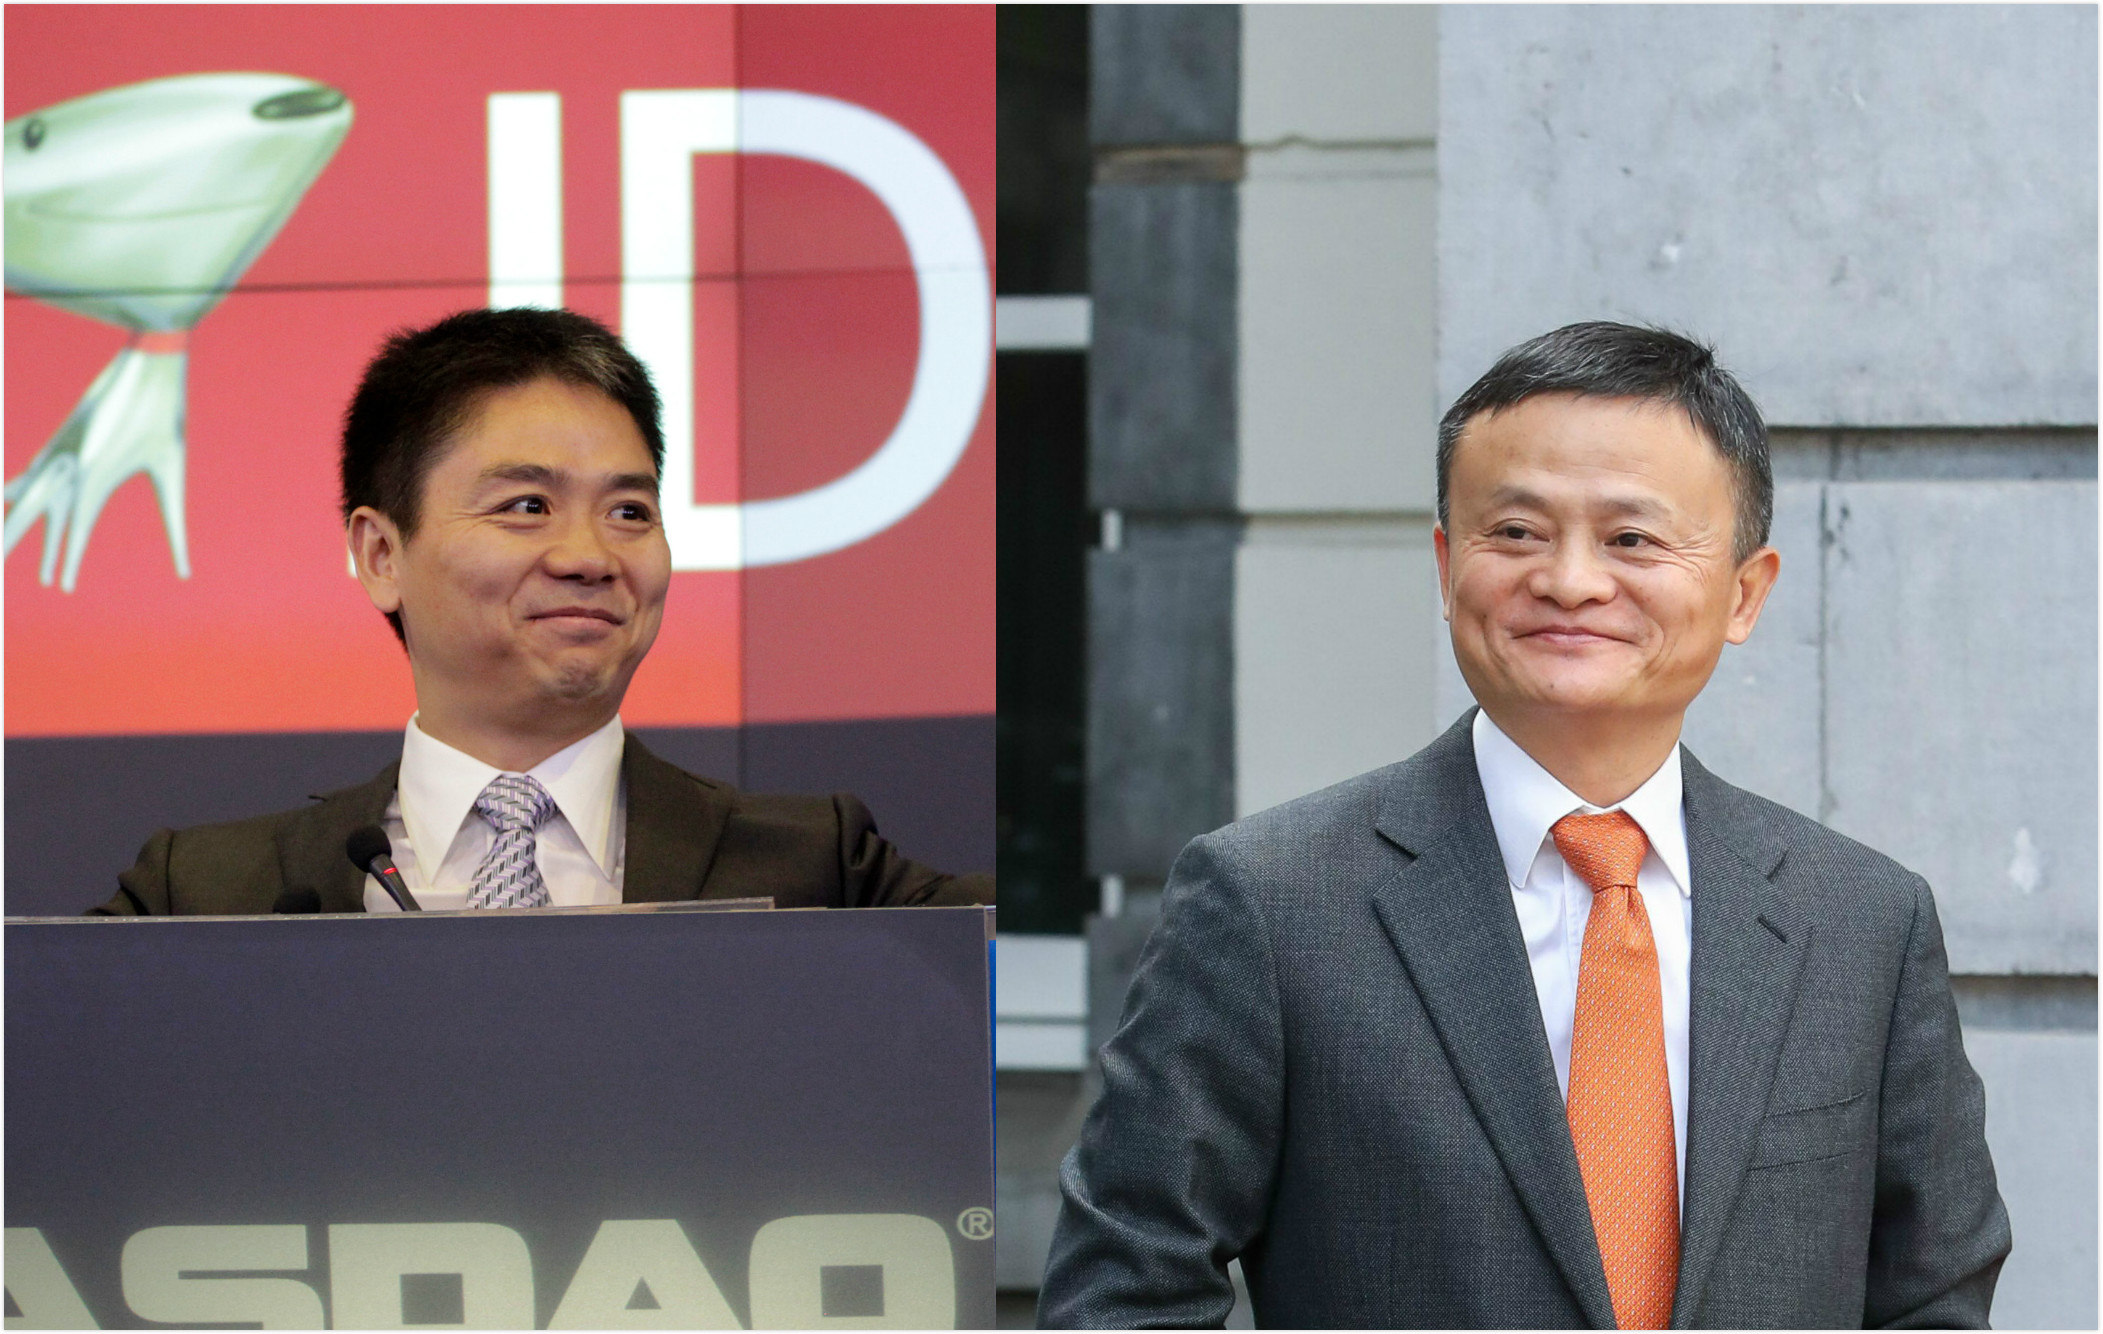 Richard Liu of JD.com and Jack Ma of Alibaba